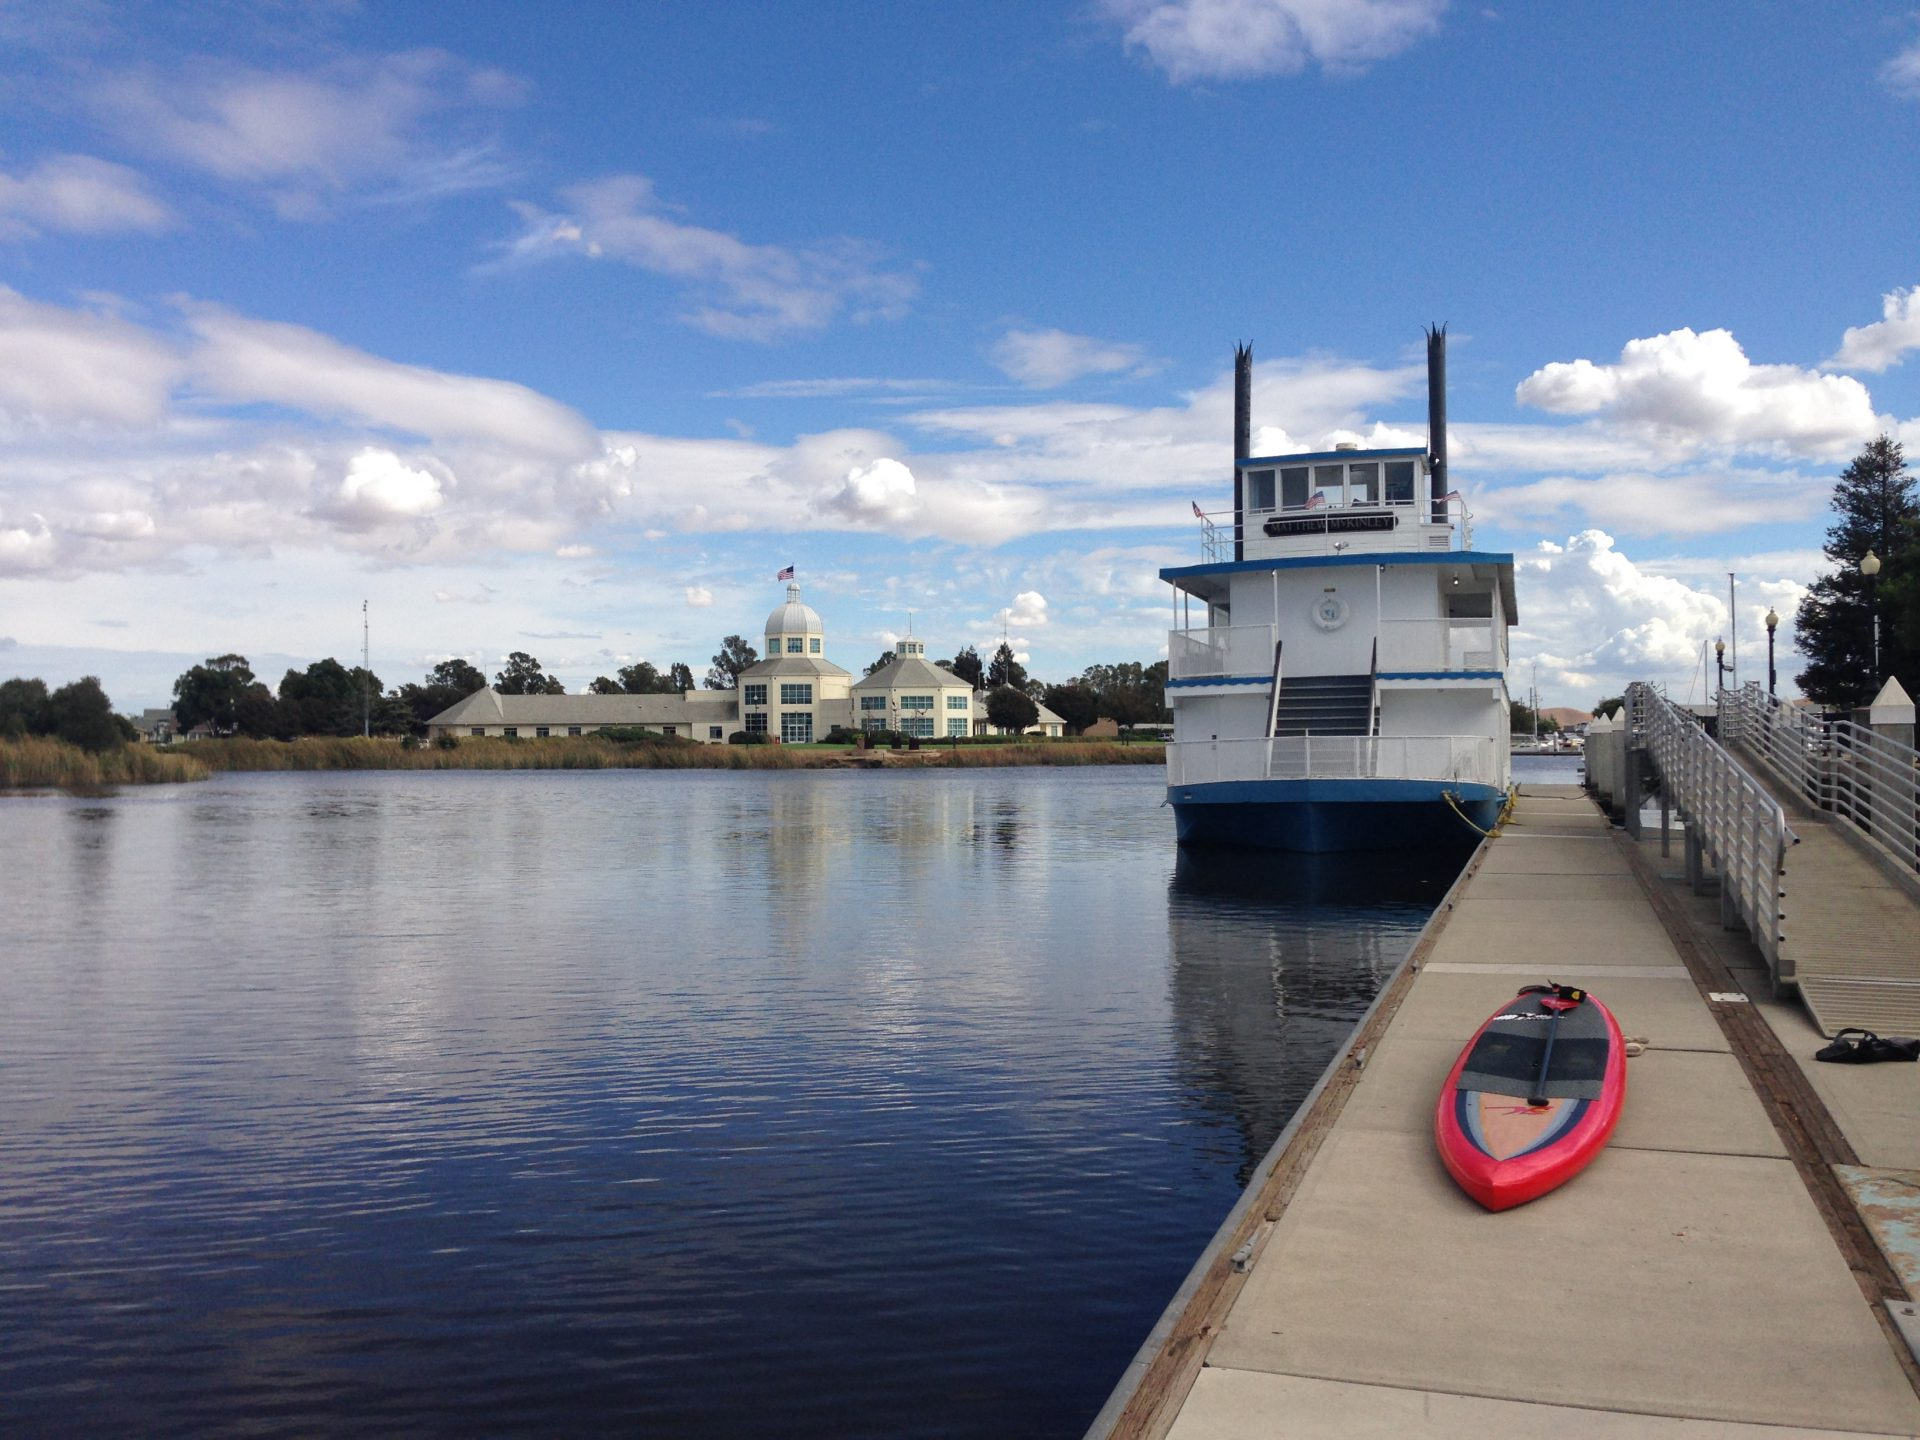 blue sky and water, riverboat moored at dock